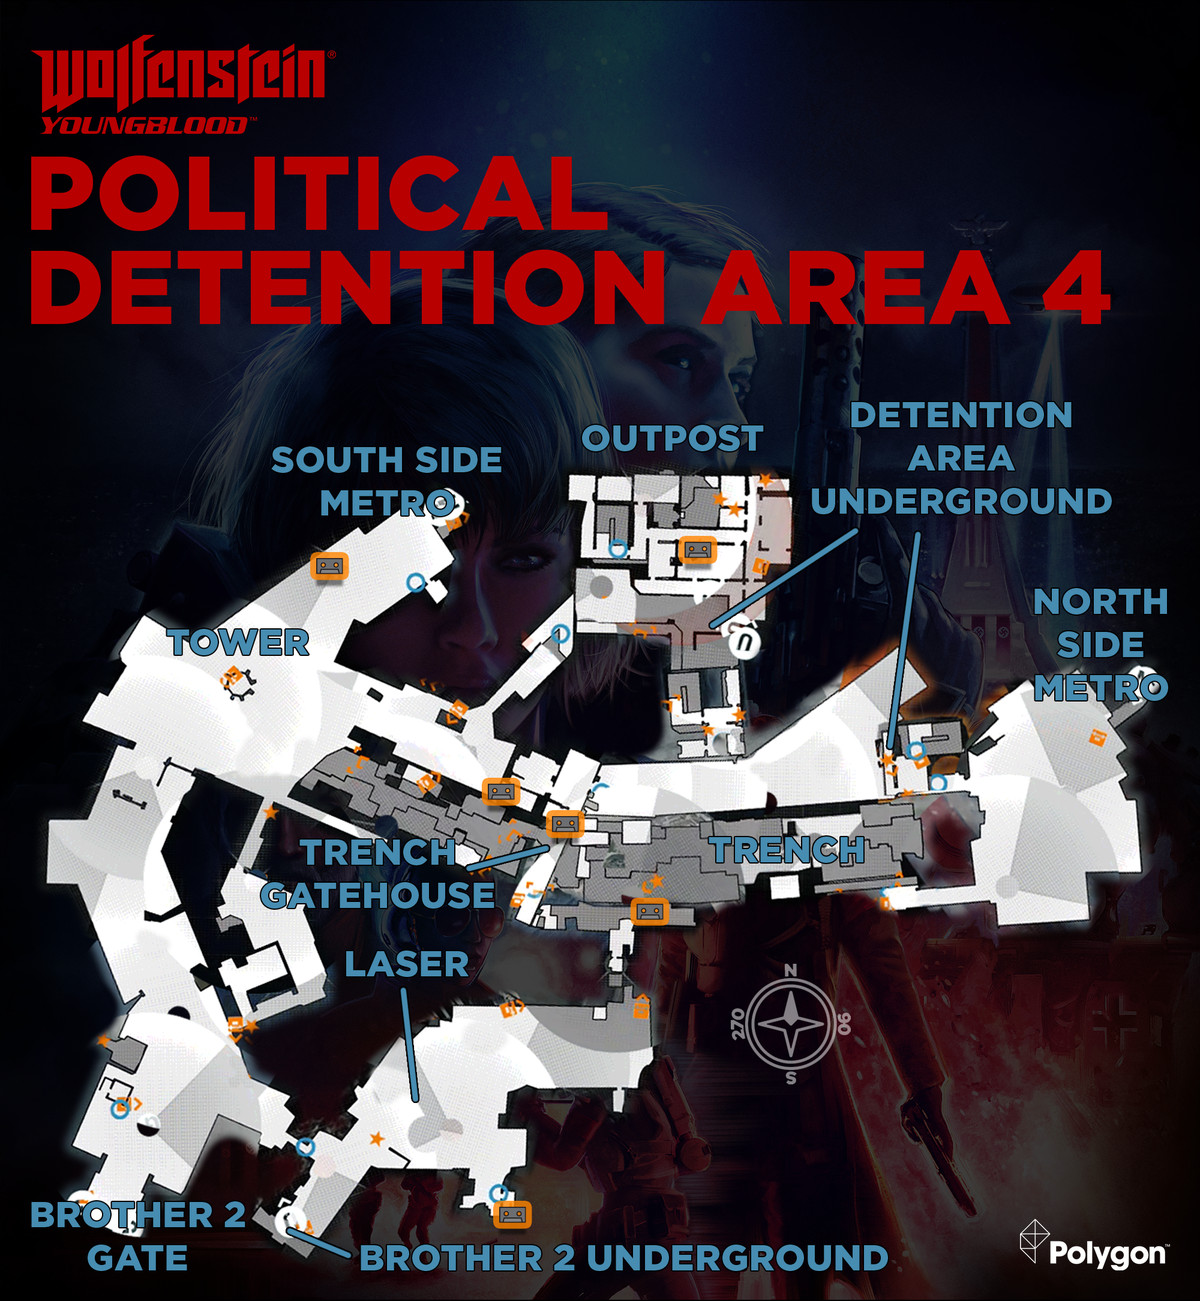 Wolfenstein: Youngblood Detention Area 4 map with cassette tapes icons